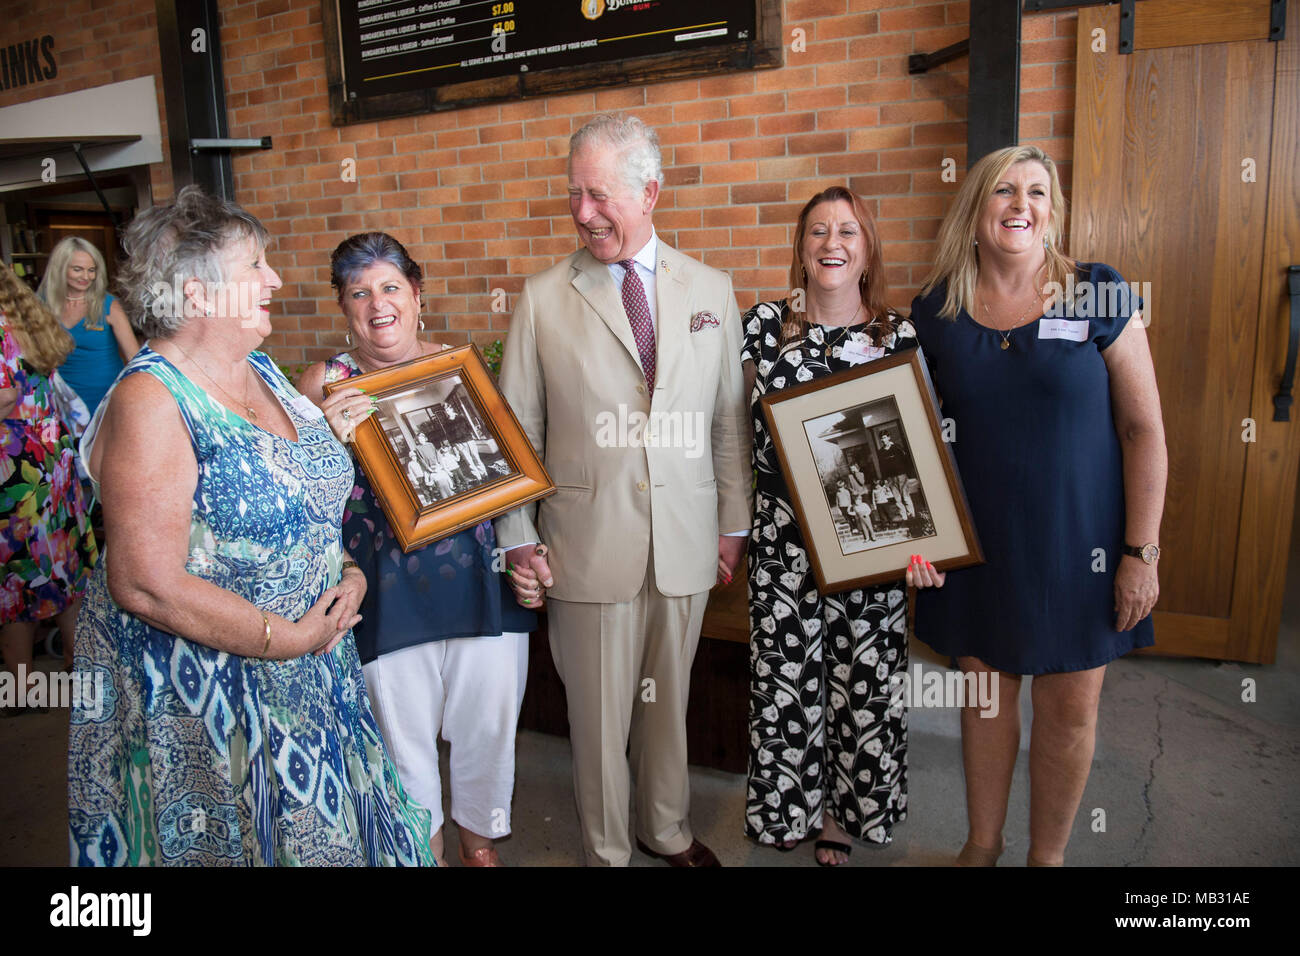 The Prince of Wales meets four sisters he boarded with when he was 17, in Geelong, Victoria where he went to school, (Left to right) Penny Jenner, Jane Tozer, Amanda Boxhall and Lisa Lawlor during a tour of the Bundaberg Rum Distillery. - Stock Image